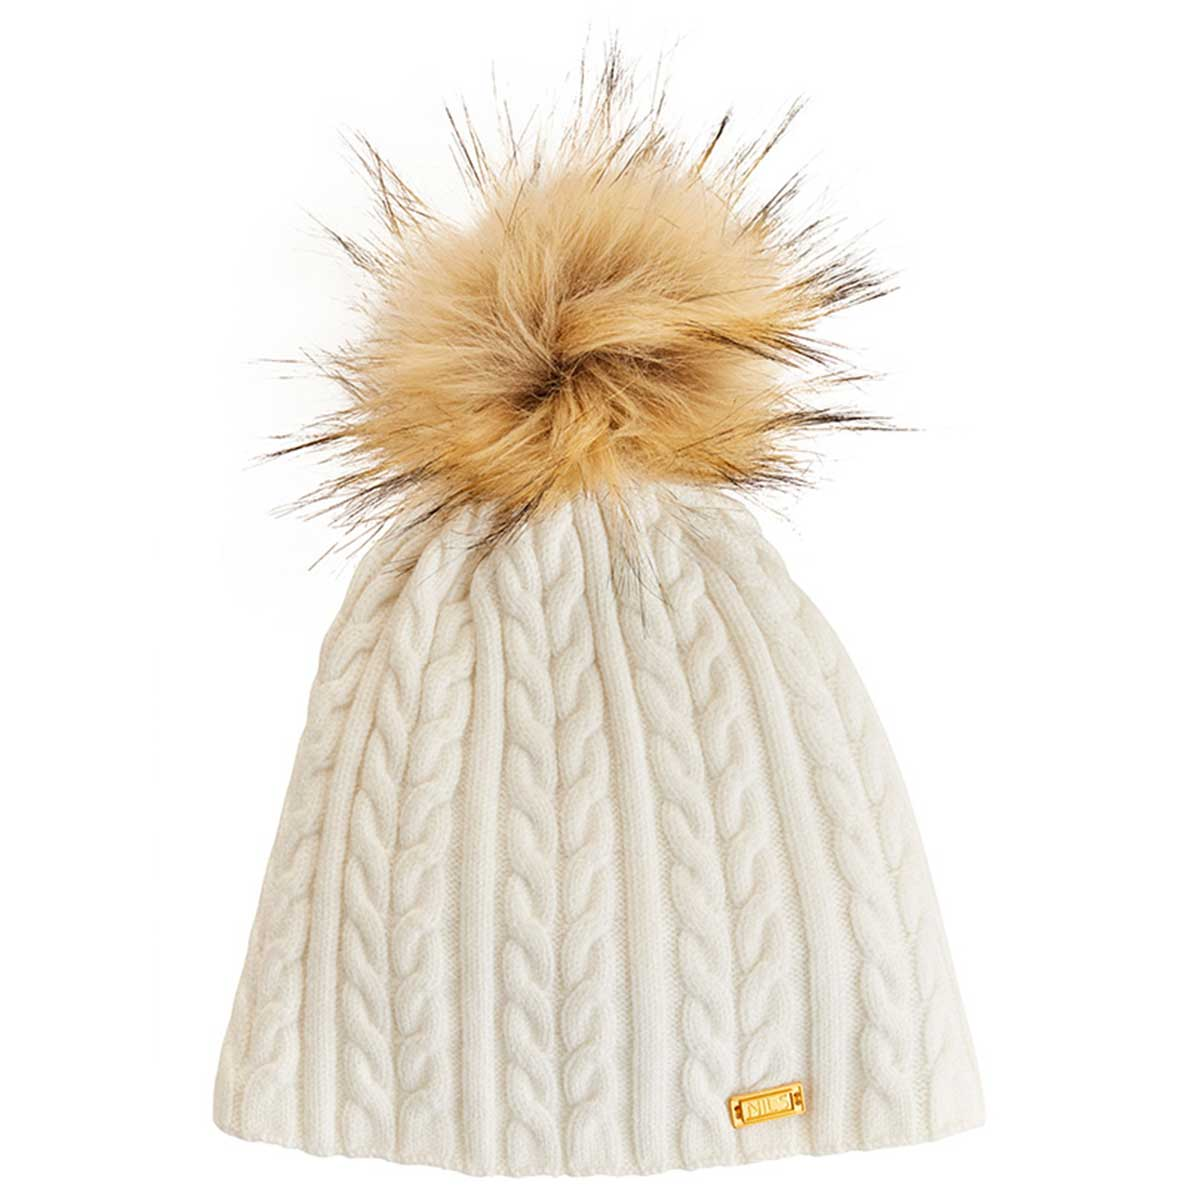 NILS Frankie hat in White